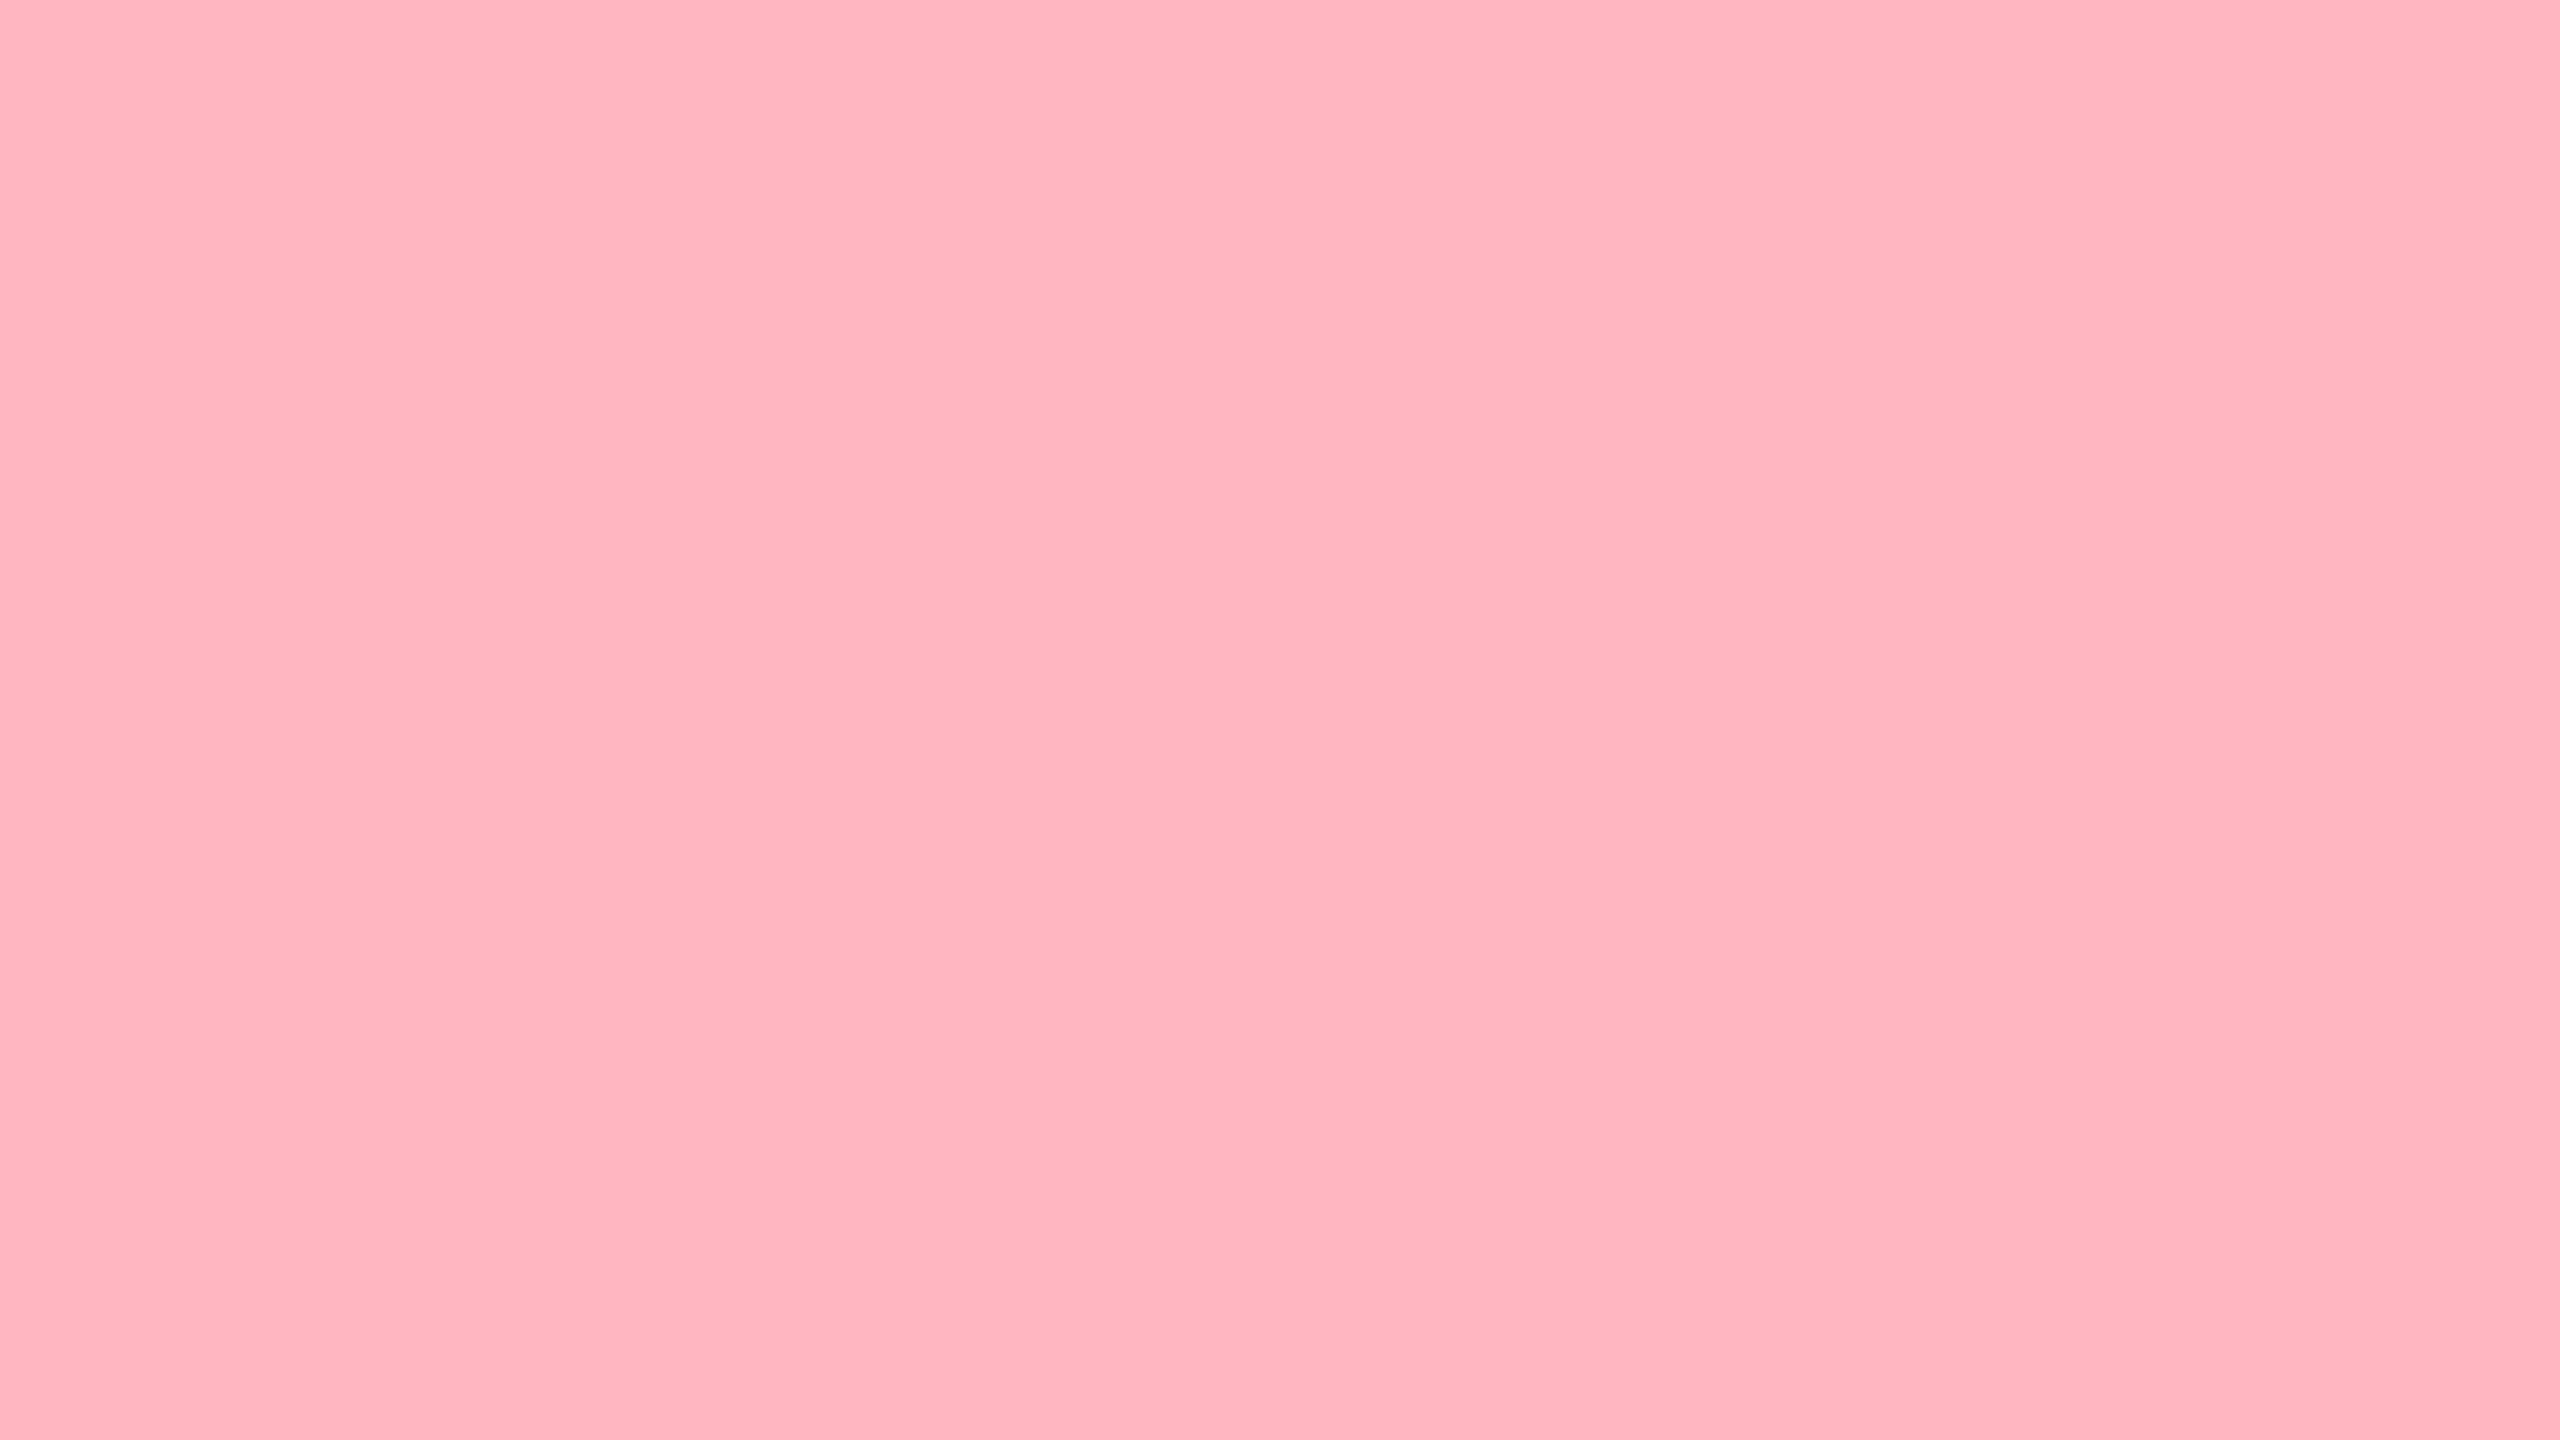 Light Pink Solid Color Wallpaper 973 2560x1440   uMadcom 2560x1440